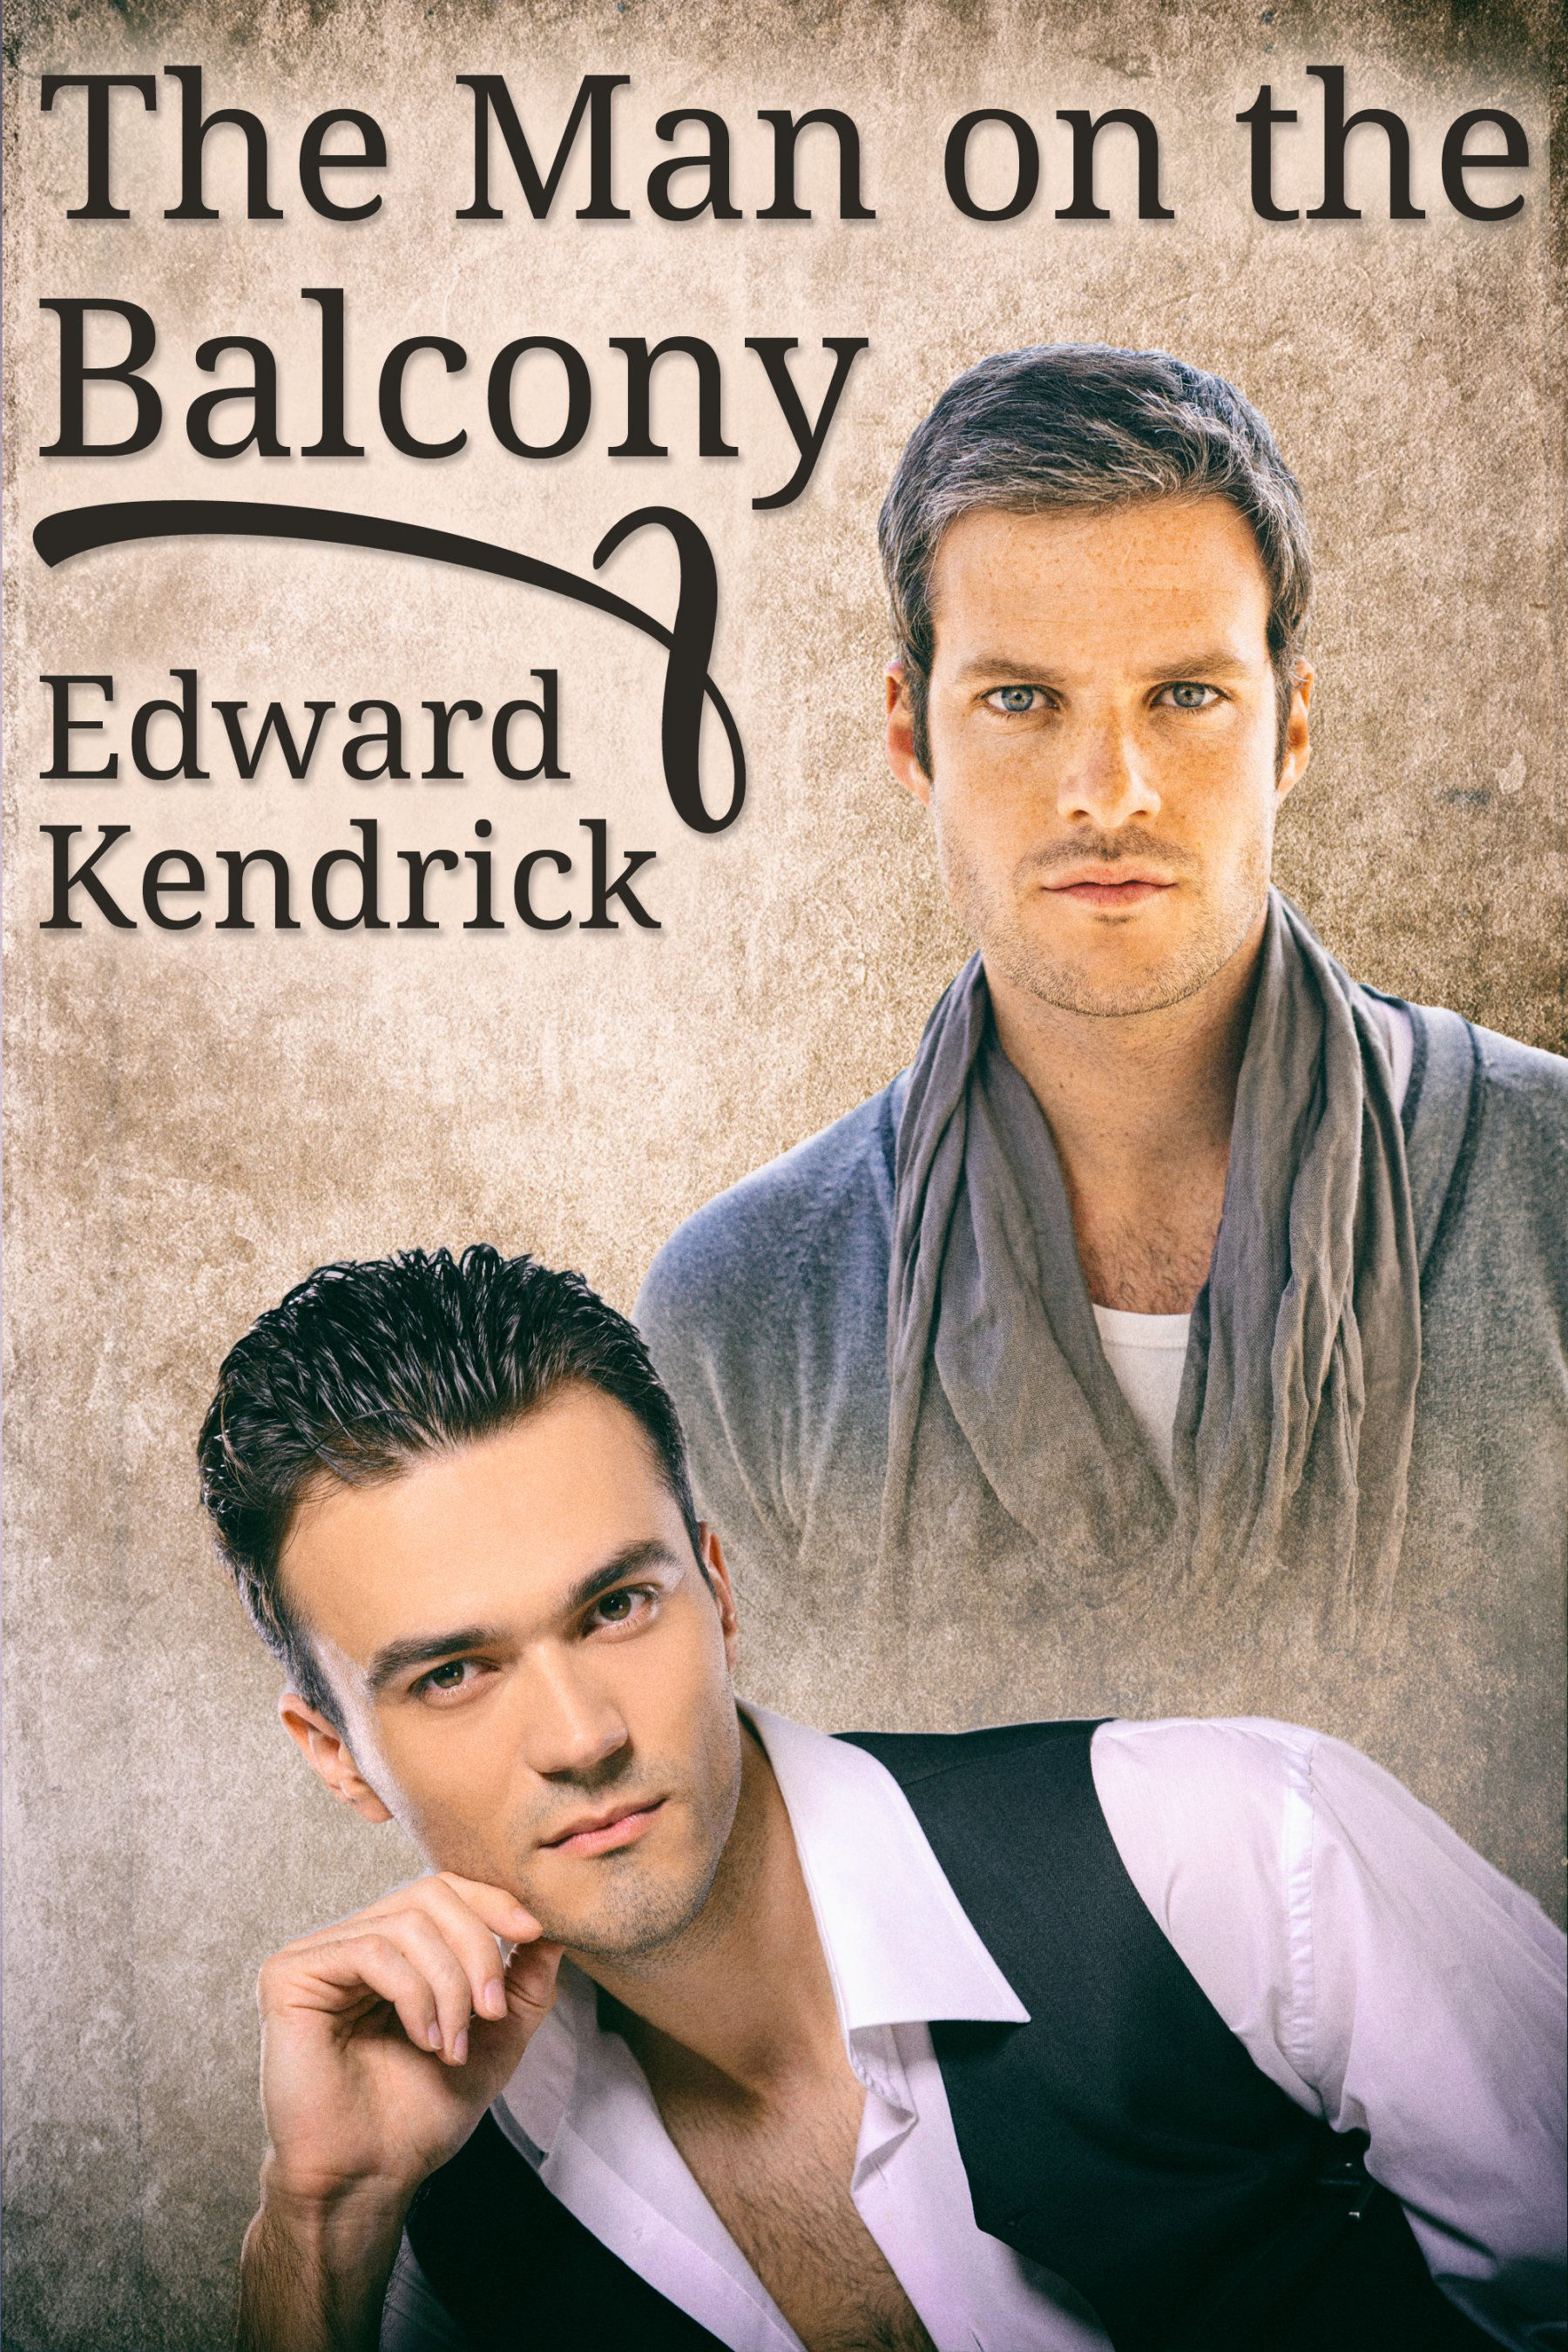 Review: The Man on the Balcony by Edward Kendrick